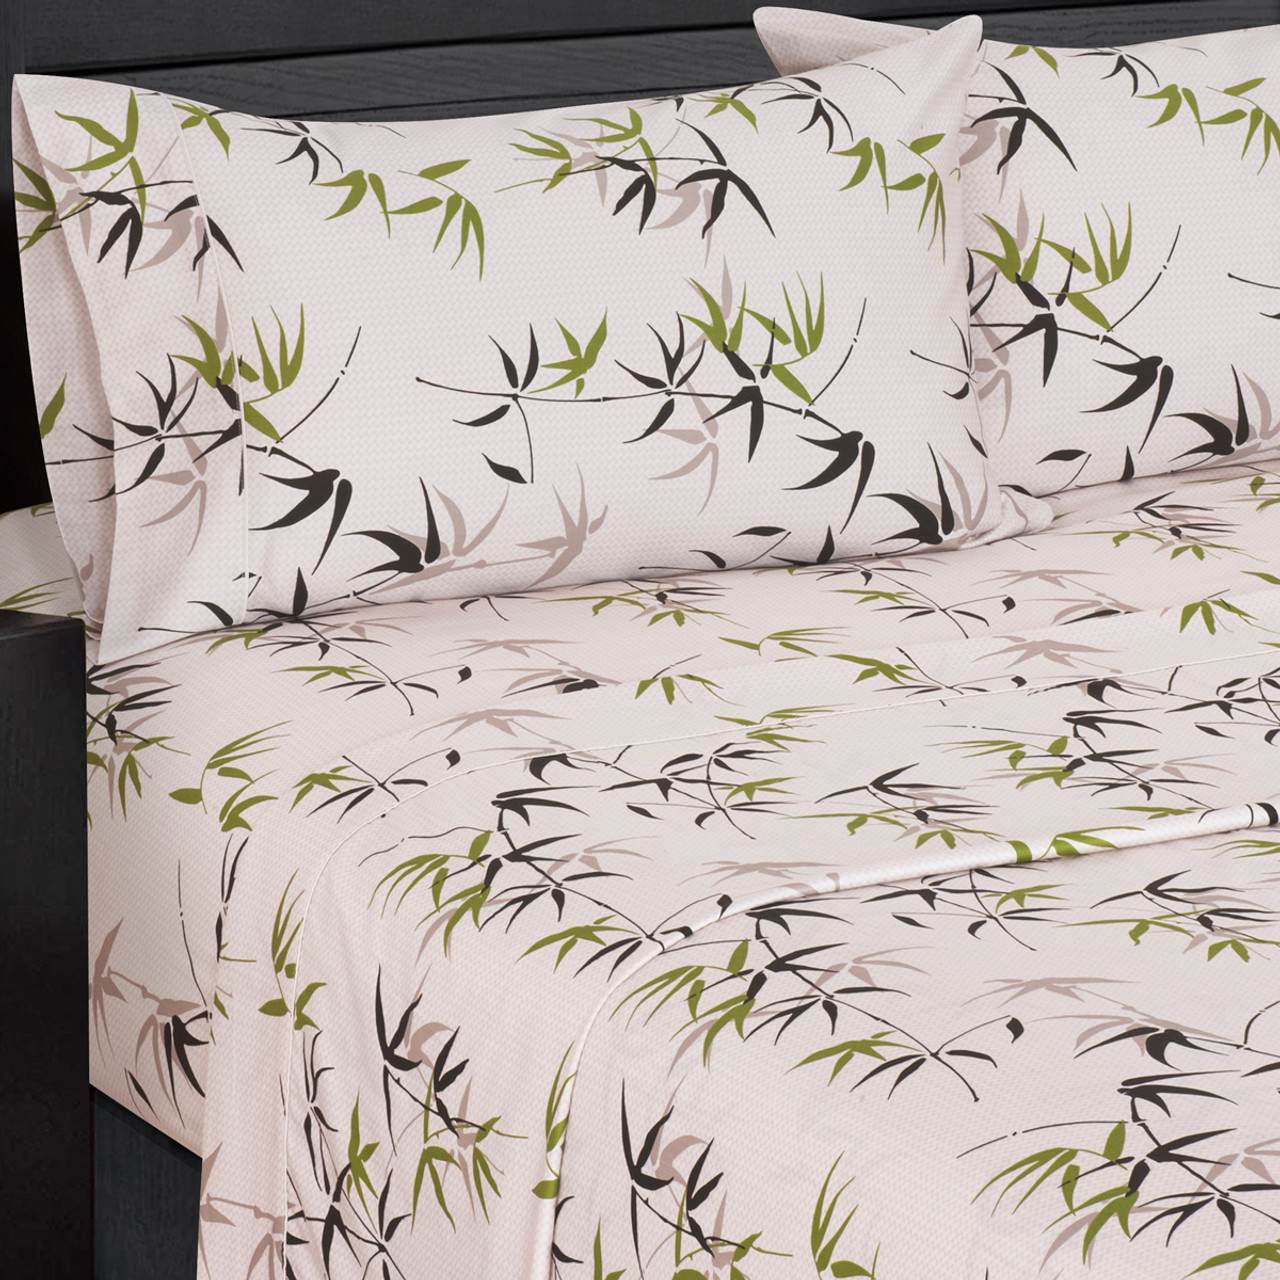 Printed Sheet Sets Fern 100 Percent Cotton Sheet Sets 300 Thread Count Per Square Inch